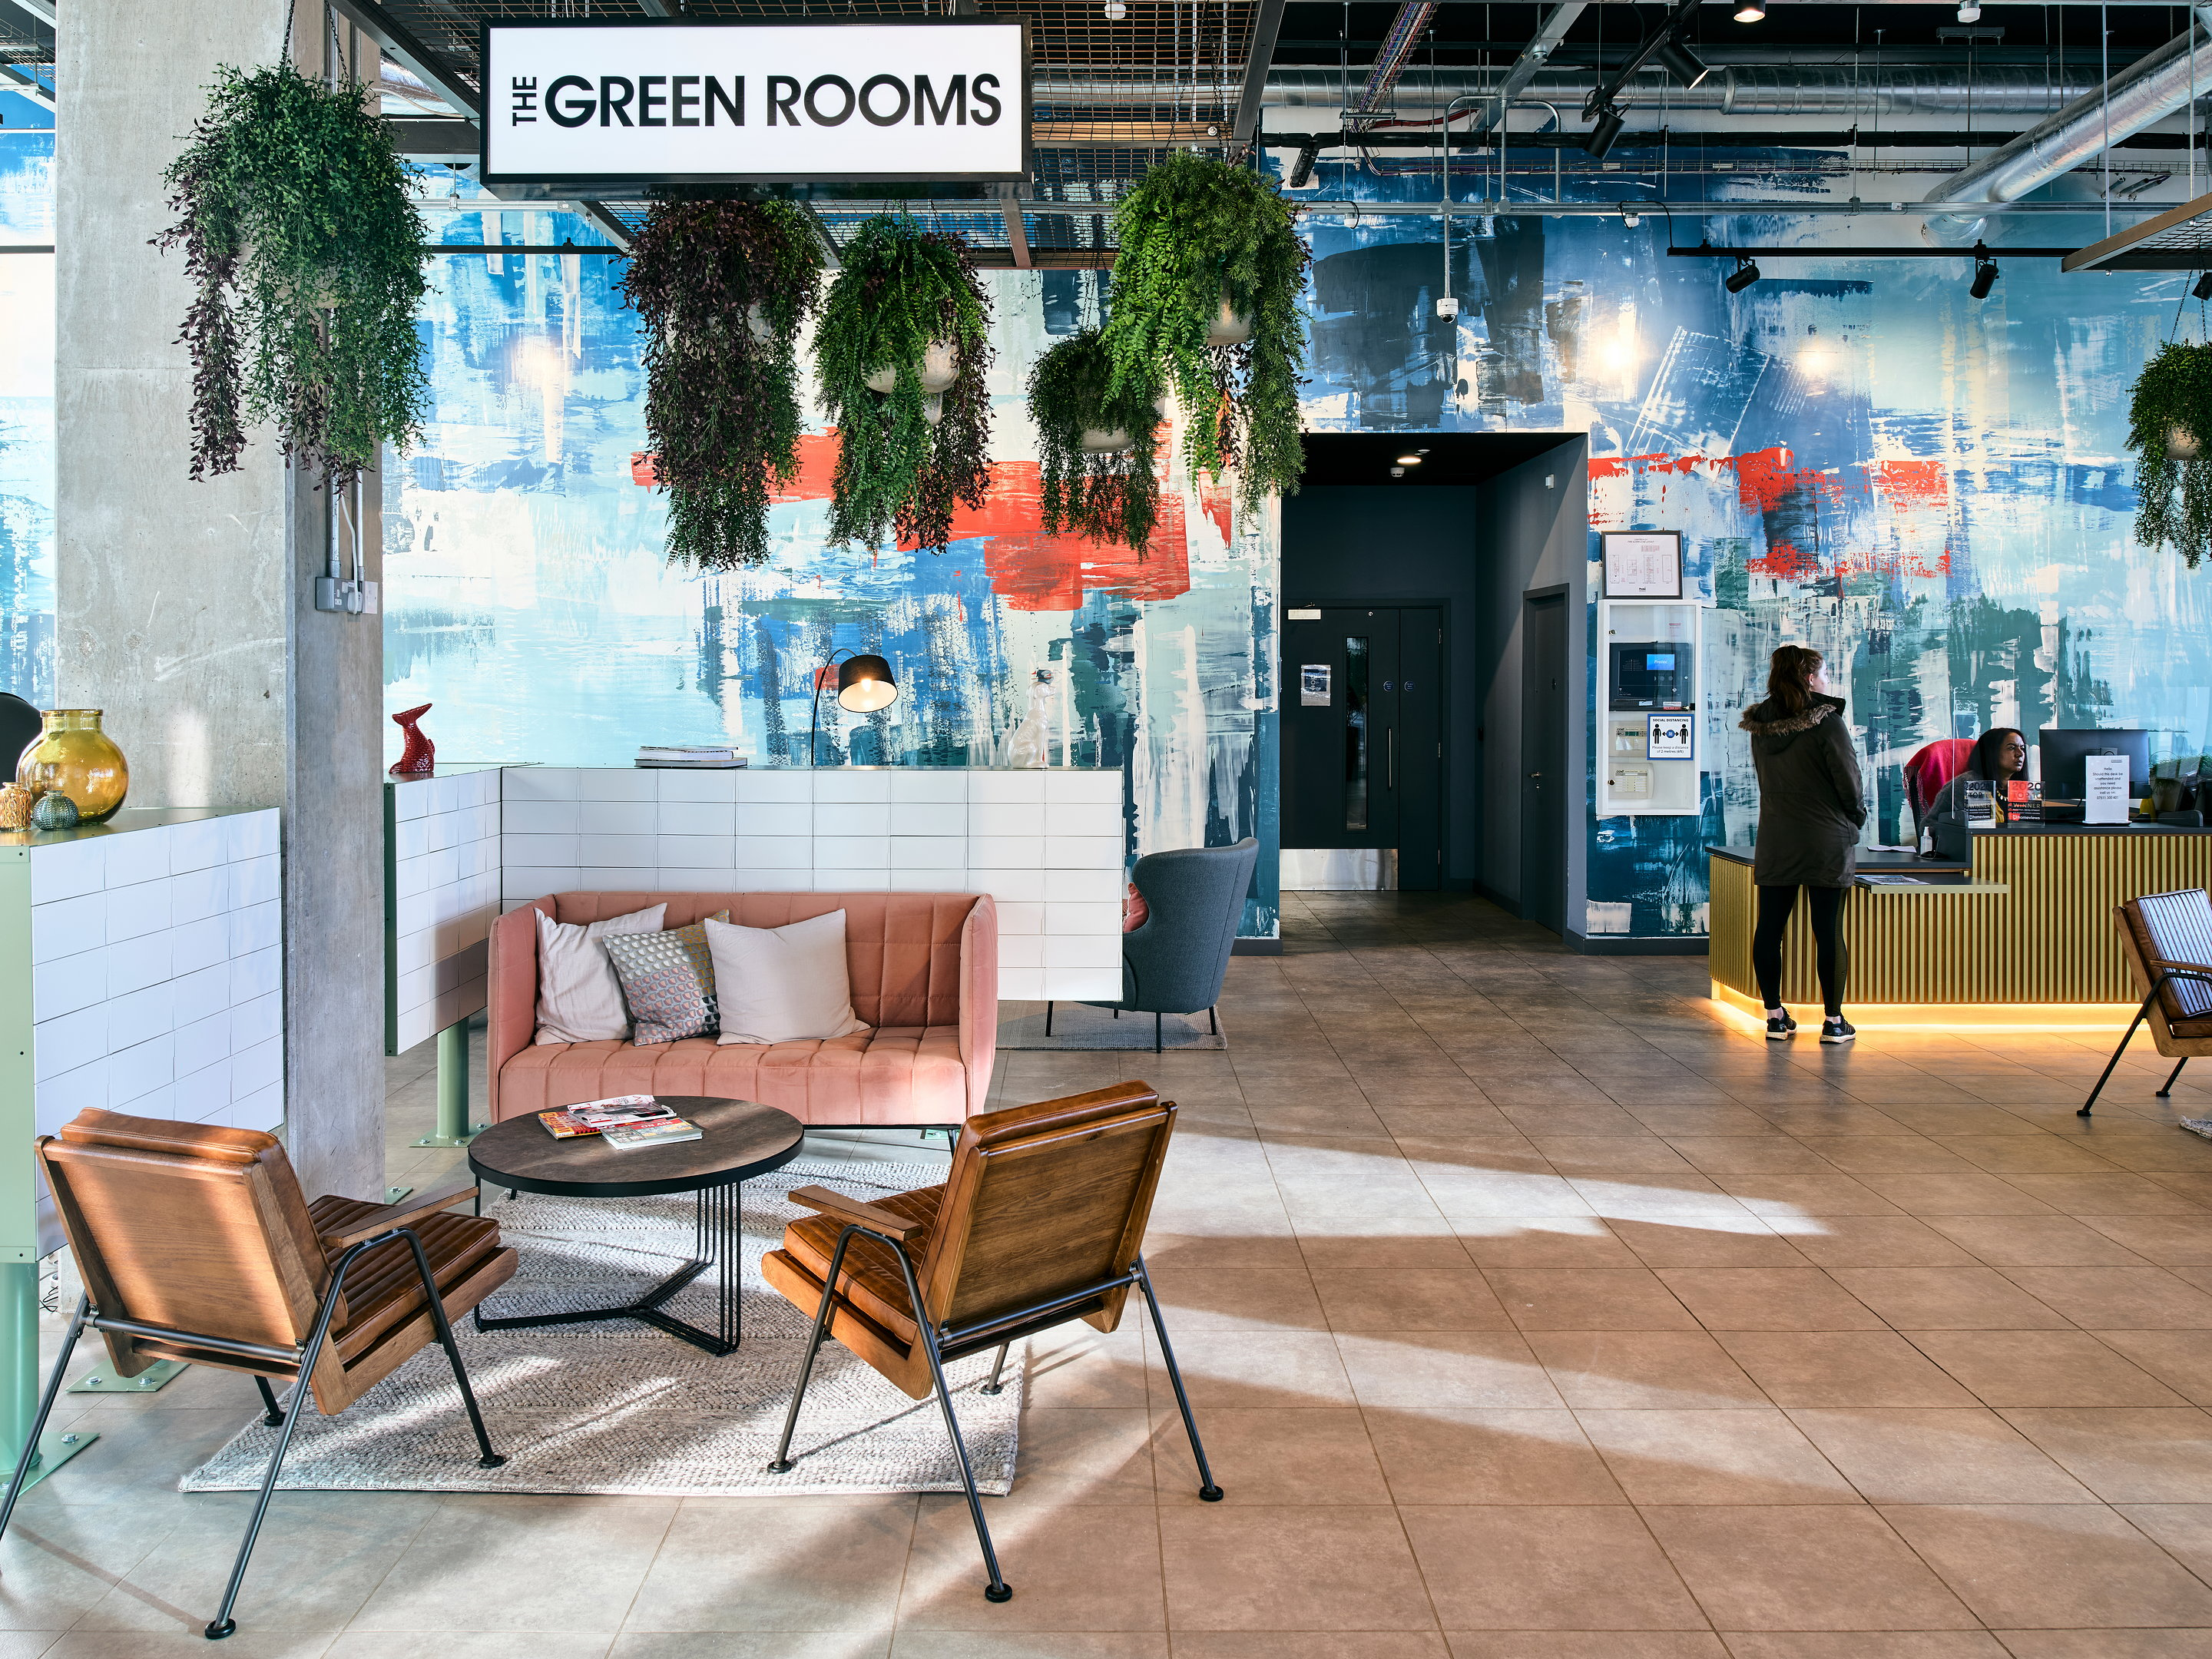 The Green Rooms Amenity Spaces